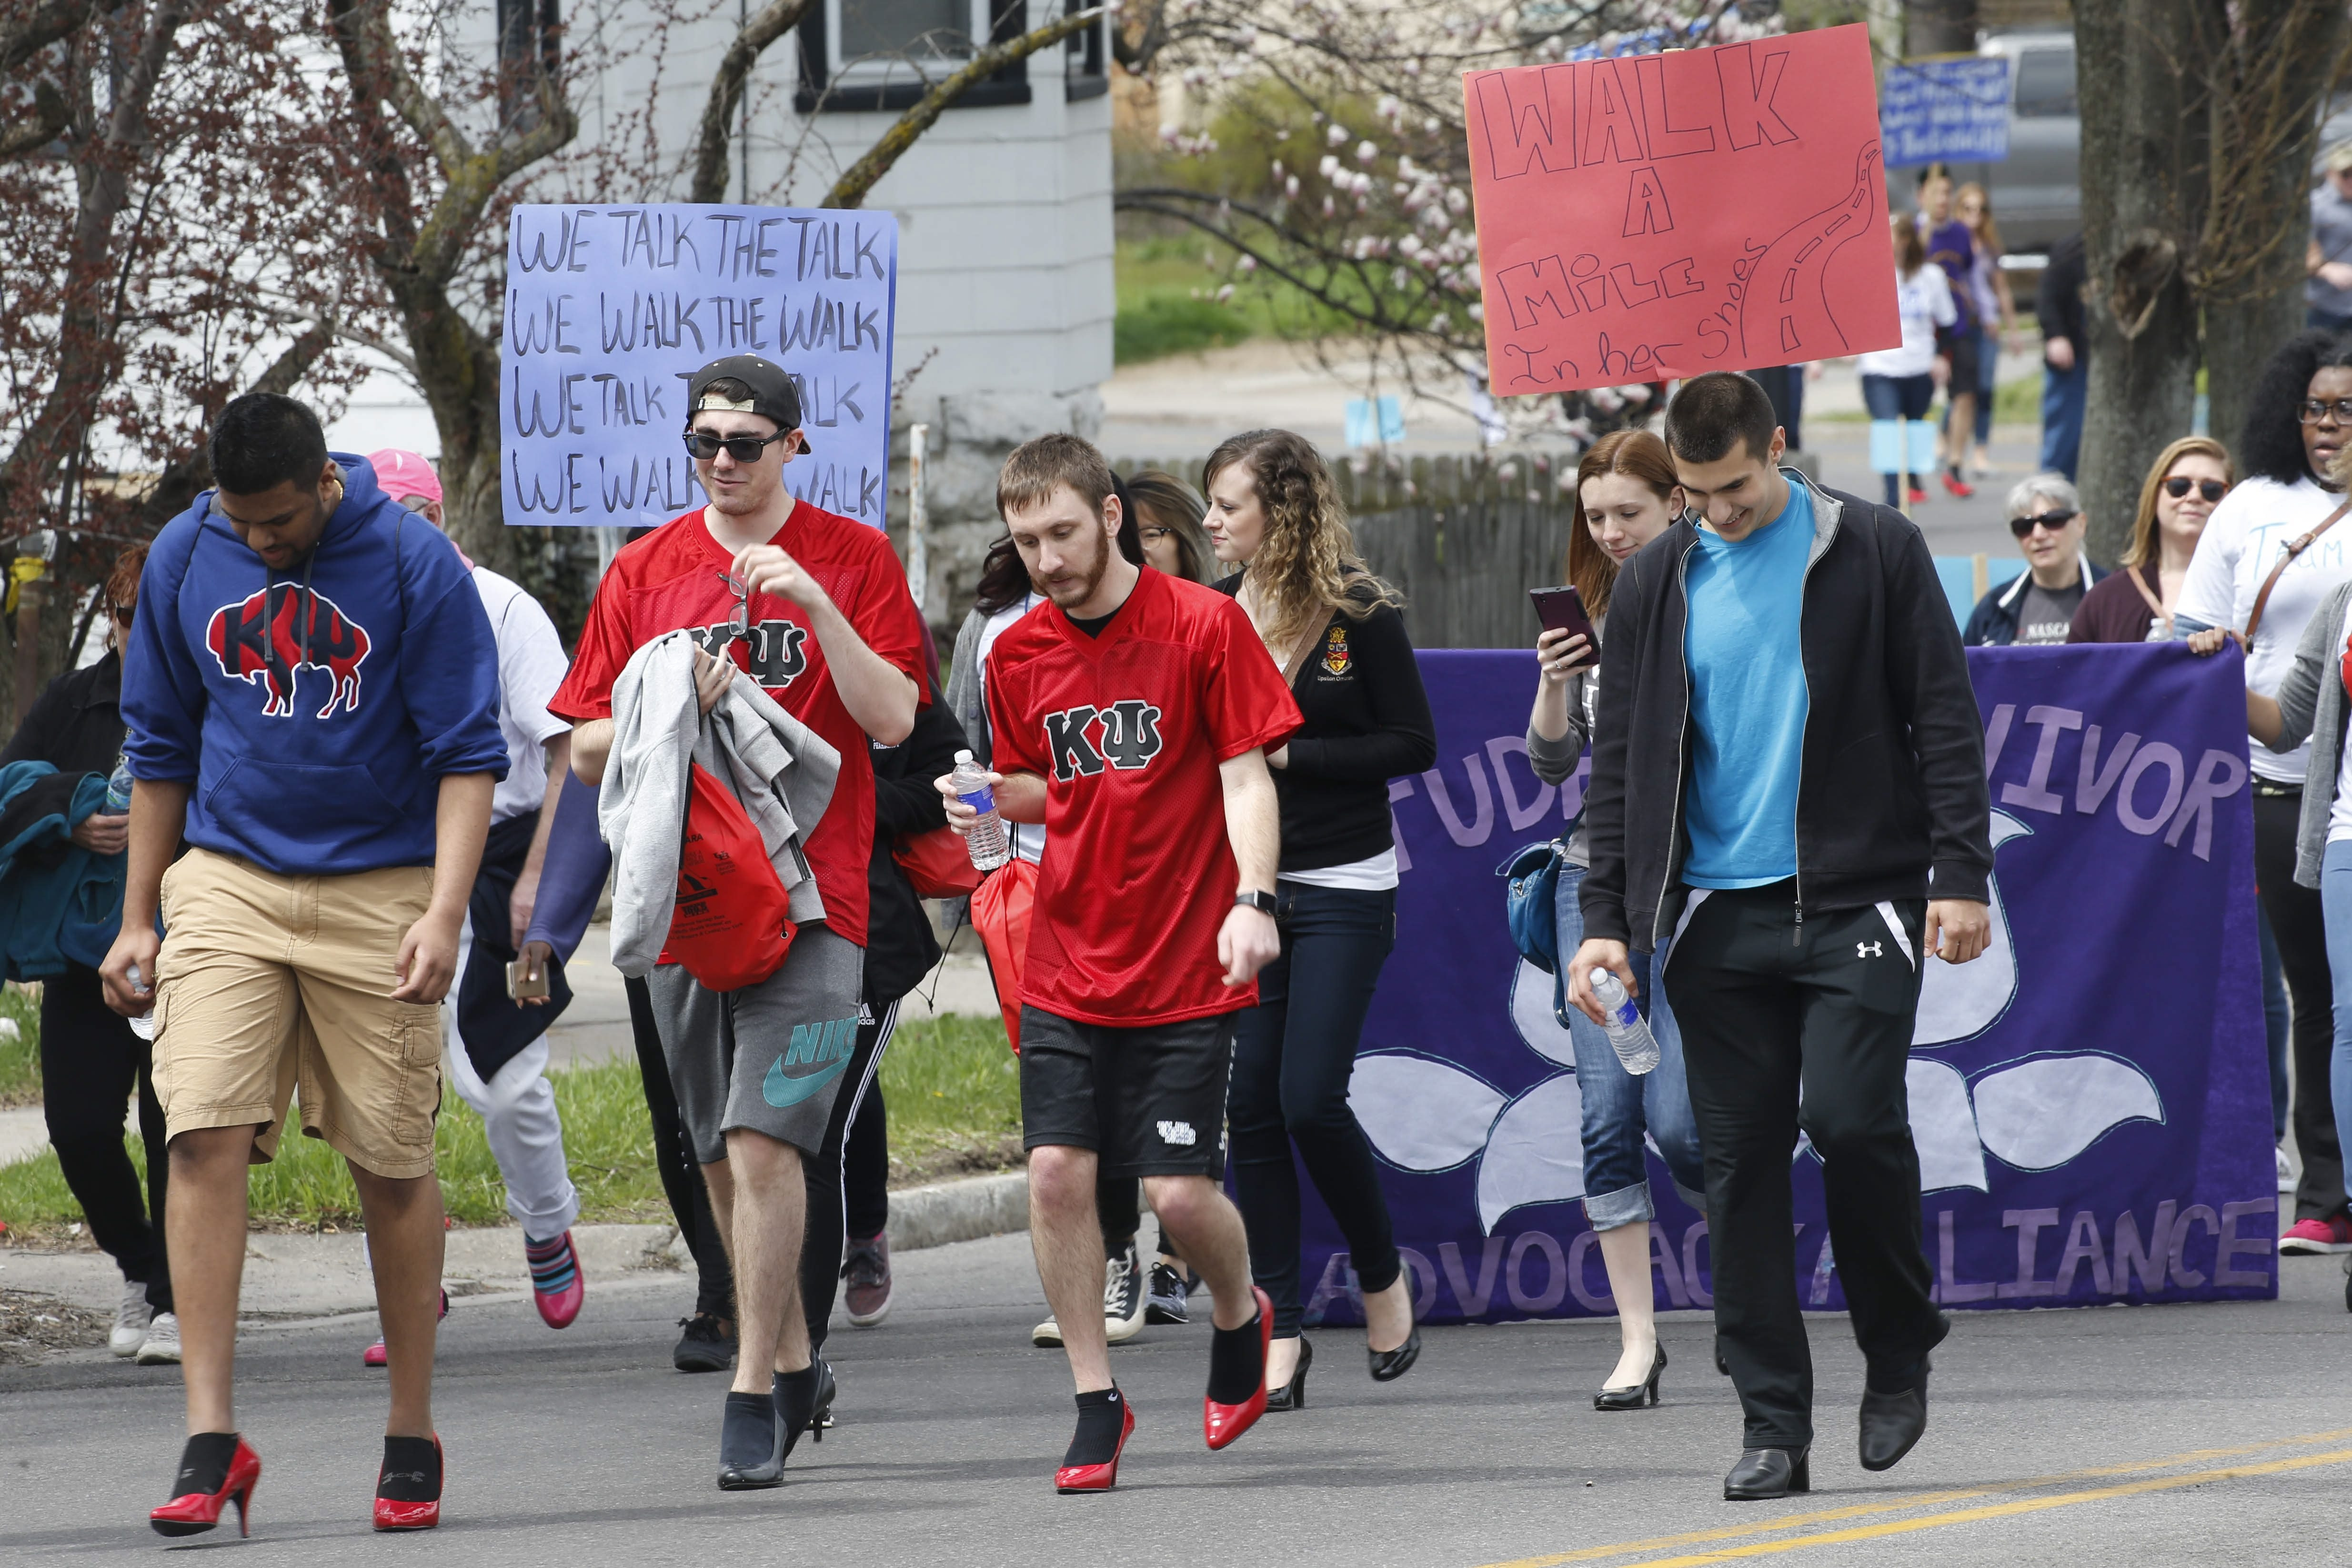 """Derek Gee/Buffalo News  Male participants wearing high heels leg out their march along Hertel Avenue on Sunday in the 11th annual """"Walk a Mile in Her Shoes"""" event, a benefit for Crisis Services, which assists rape victims."""